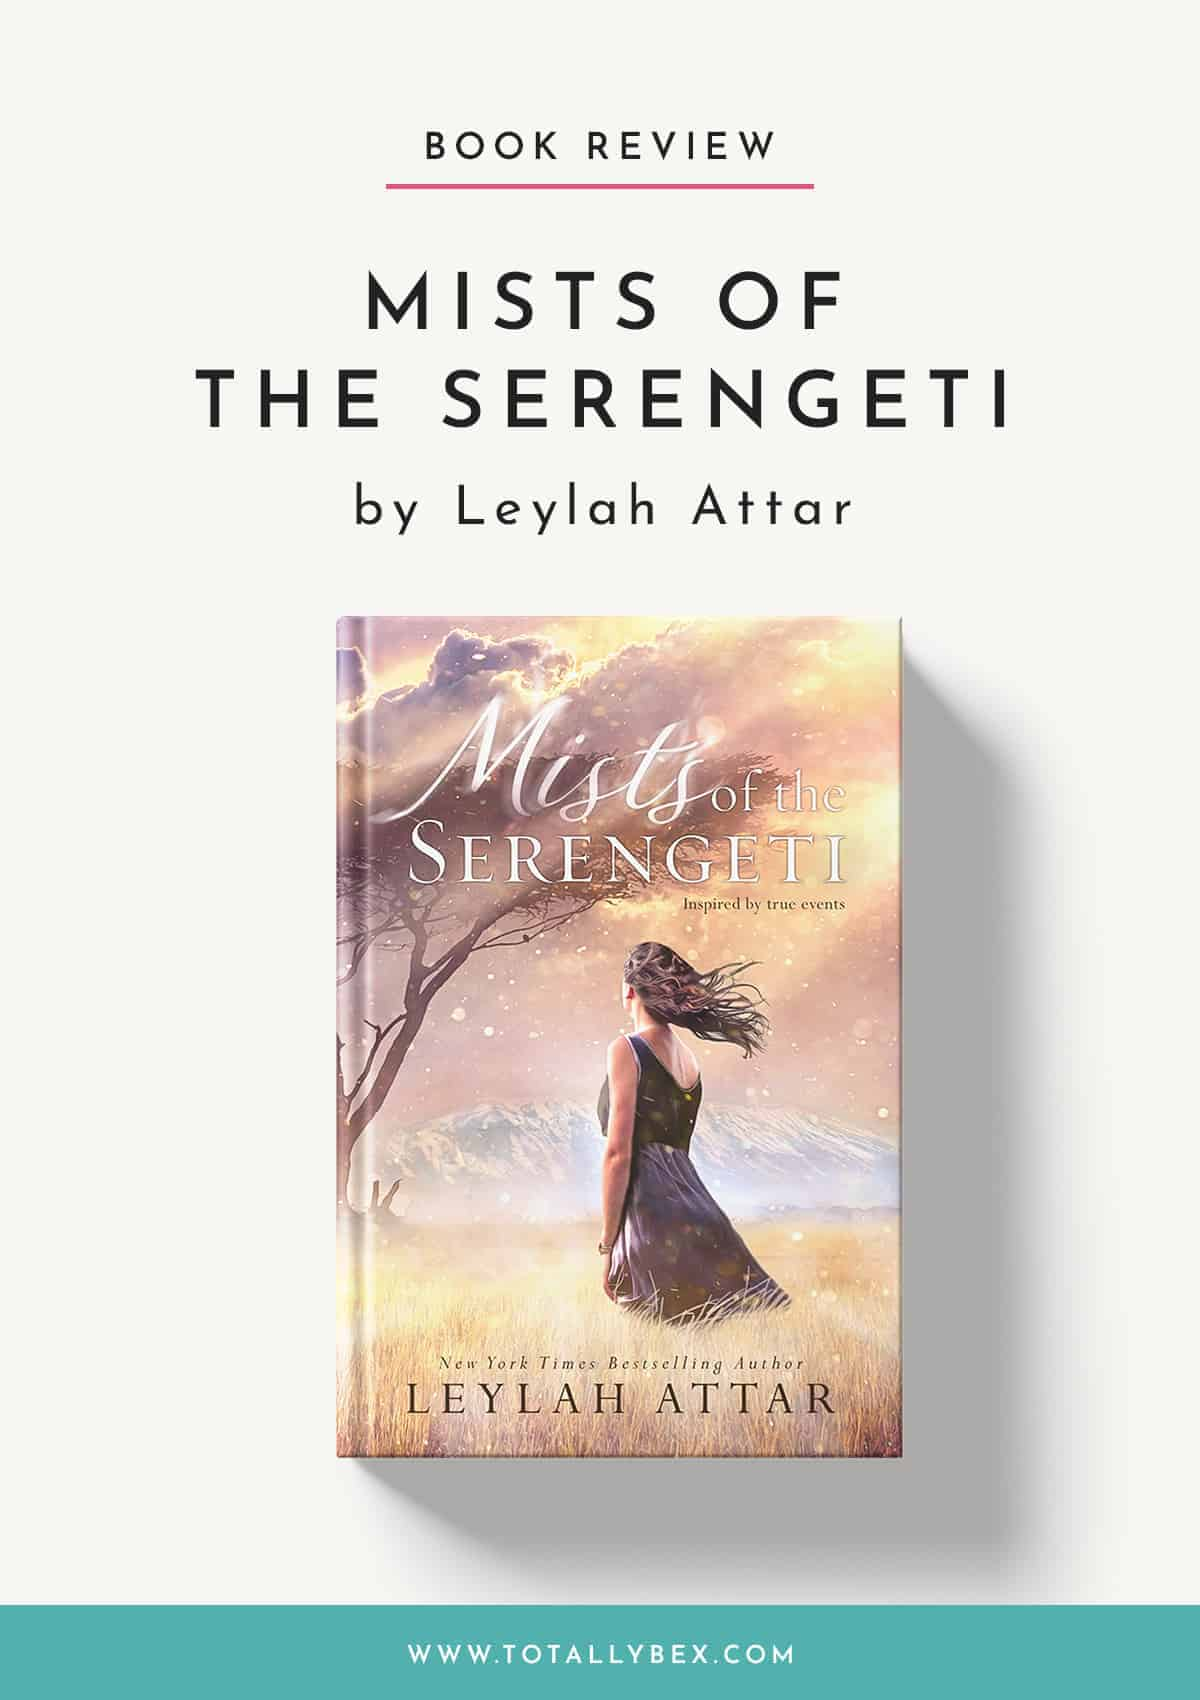 Mists of the Serengeti by Leylah Attar-Book Review